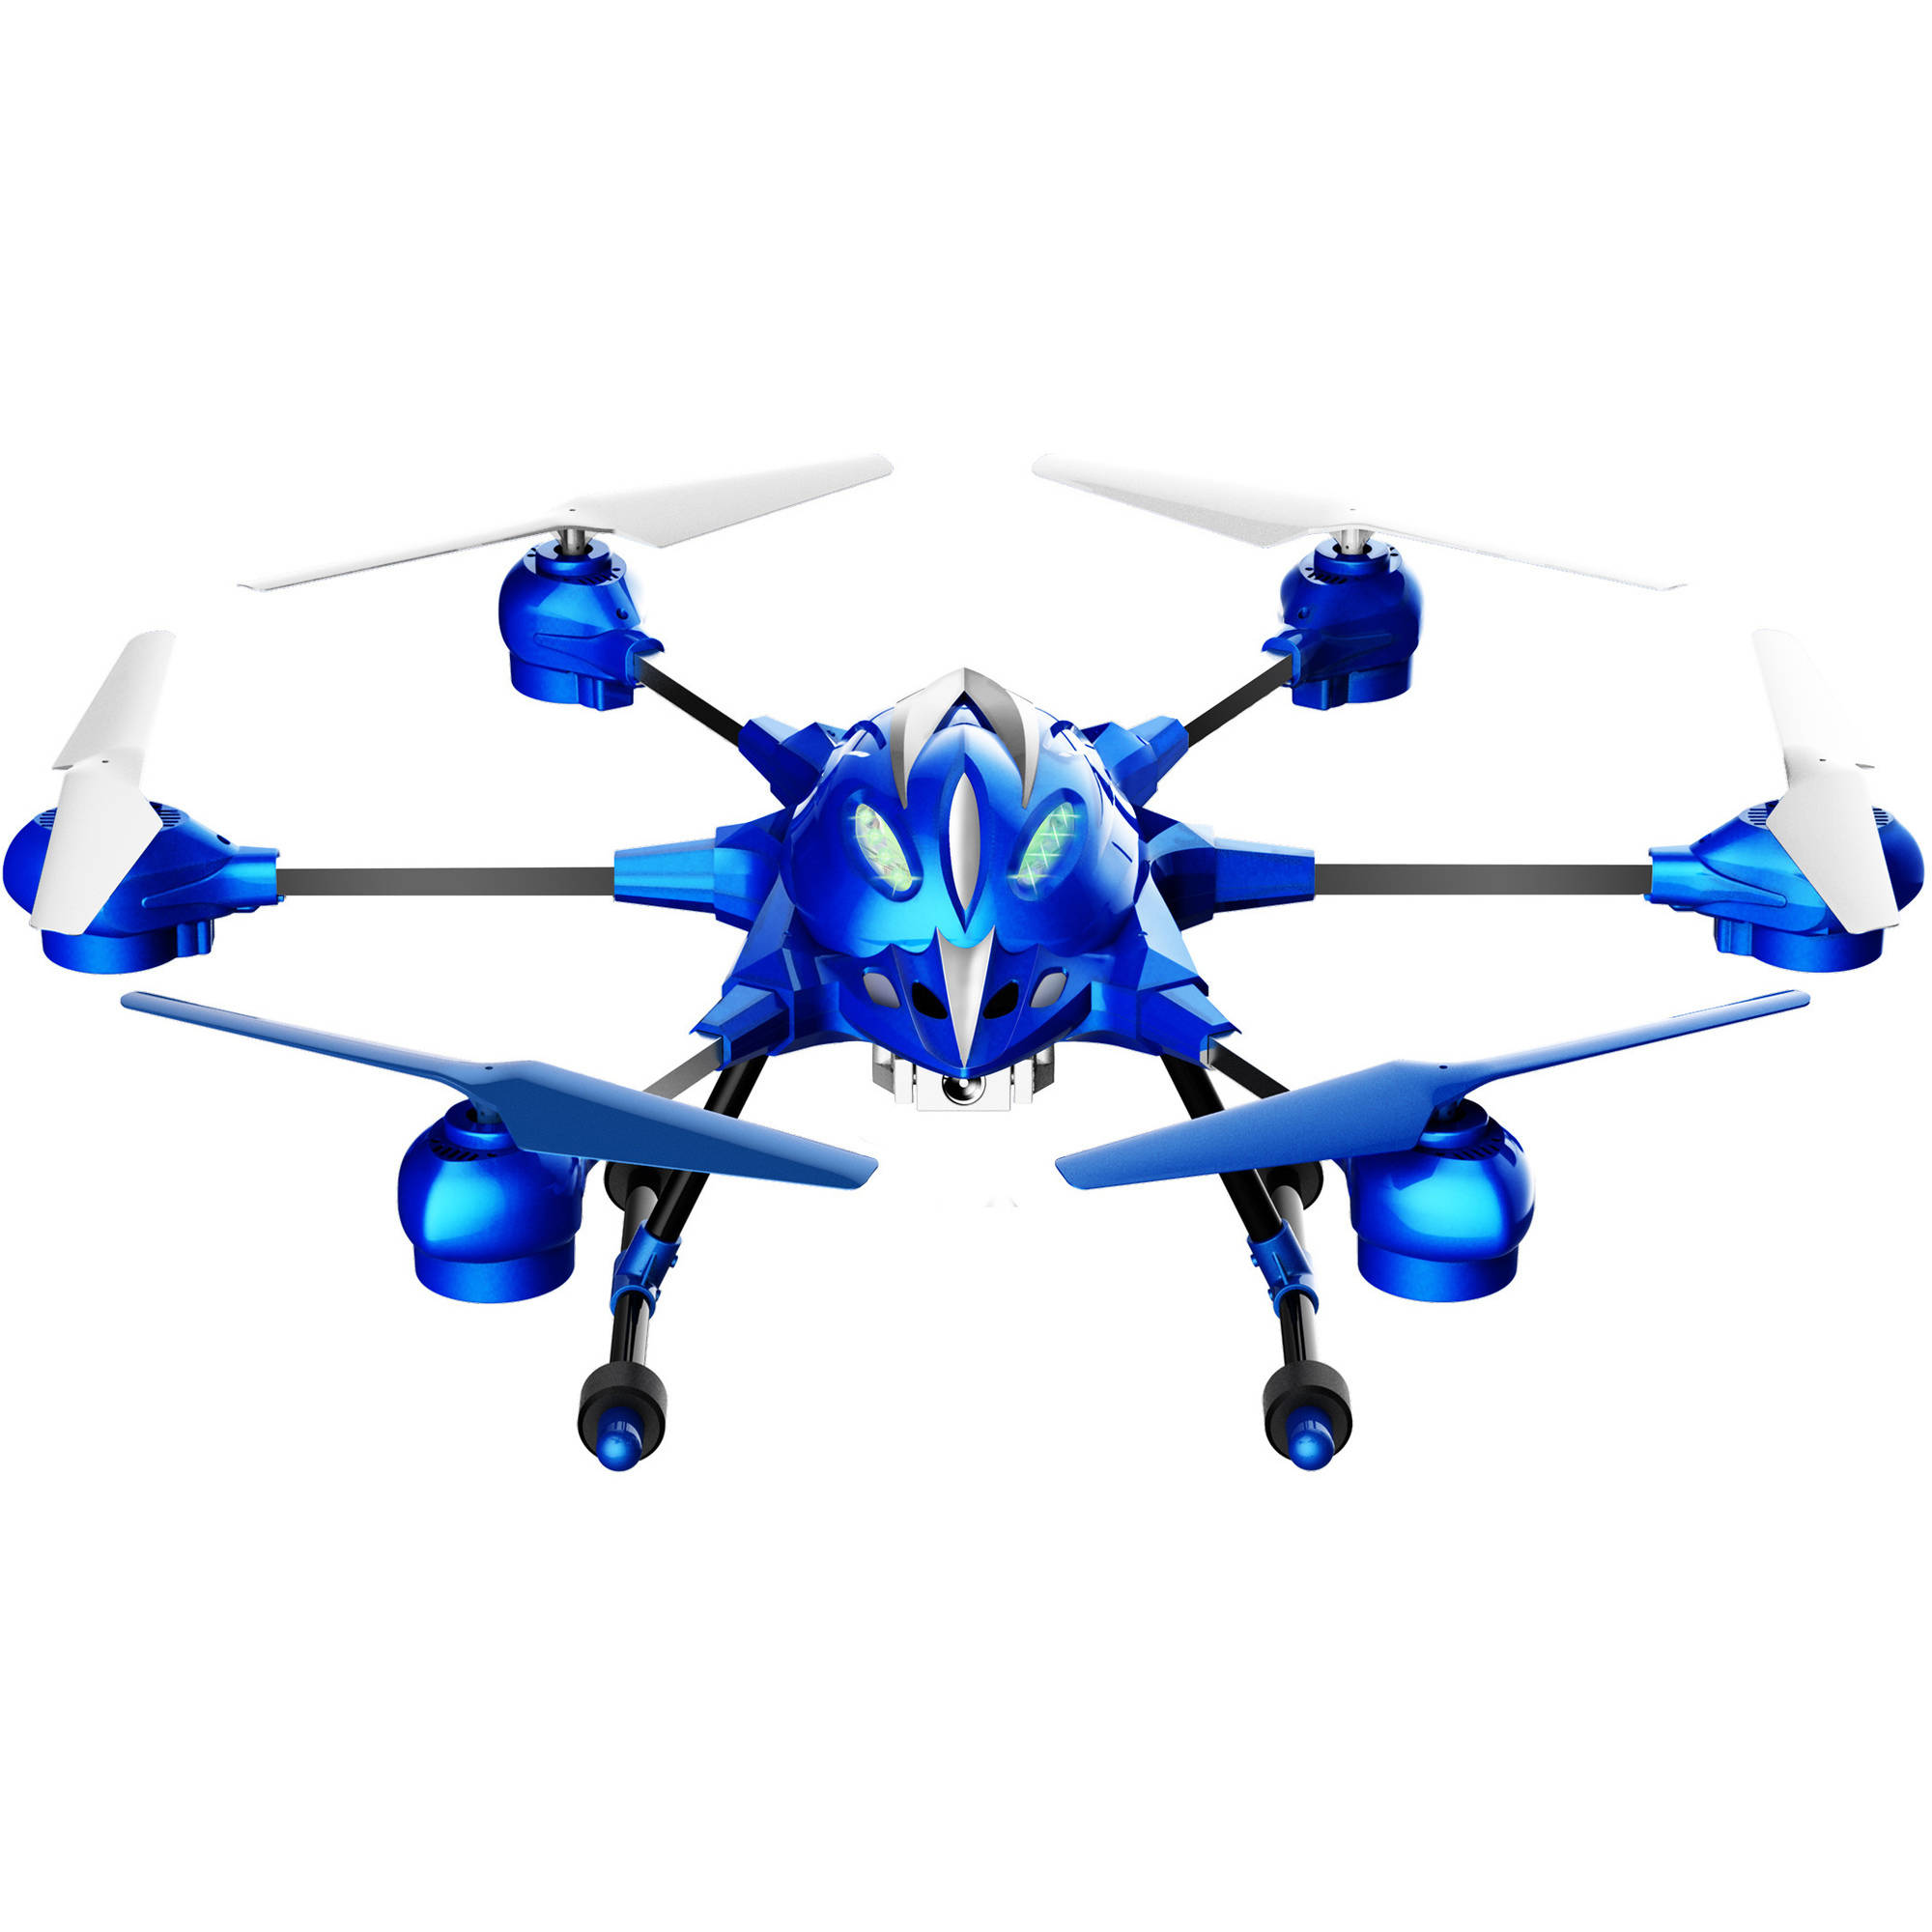 Riviera RC Pathfinder Hexacopter WiFi Drone, Blue